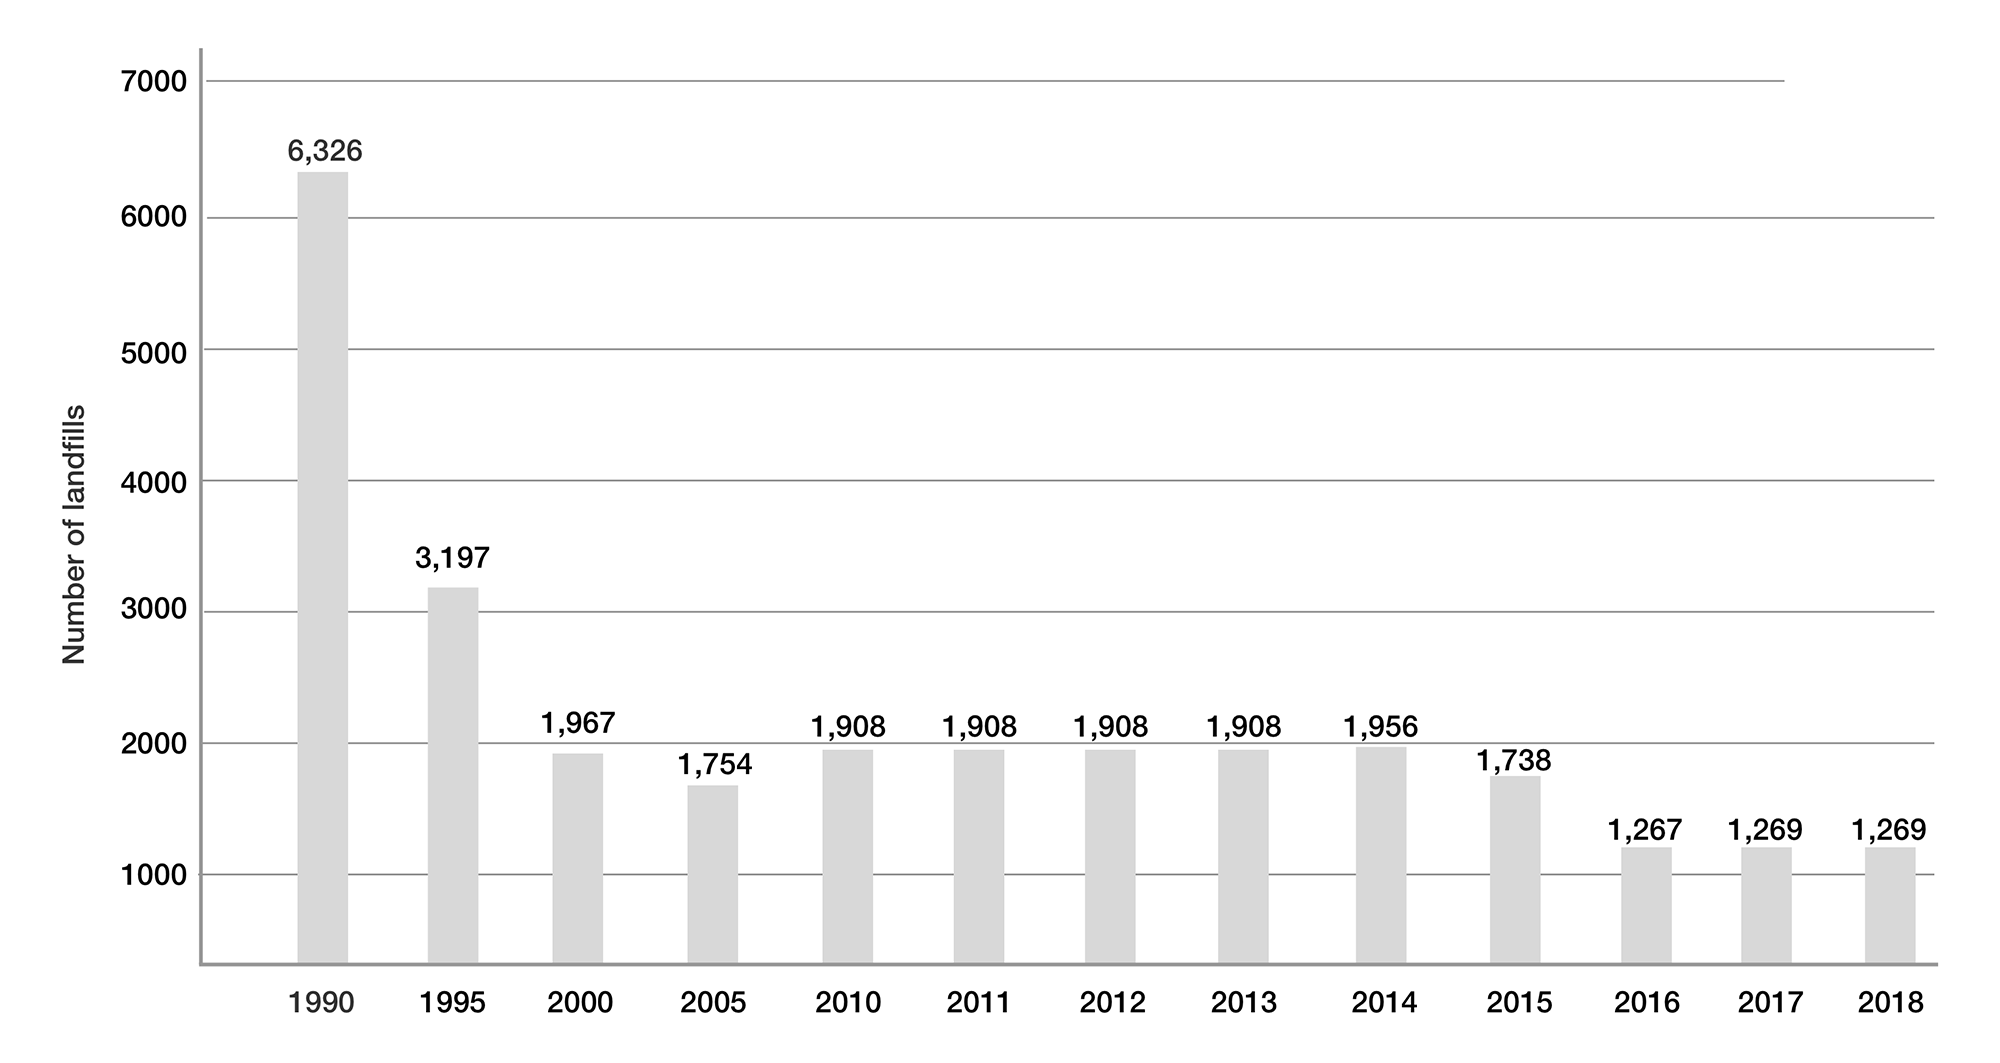 Number of Landfills in the United States from 1990 to 2018